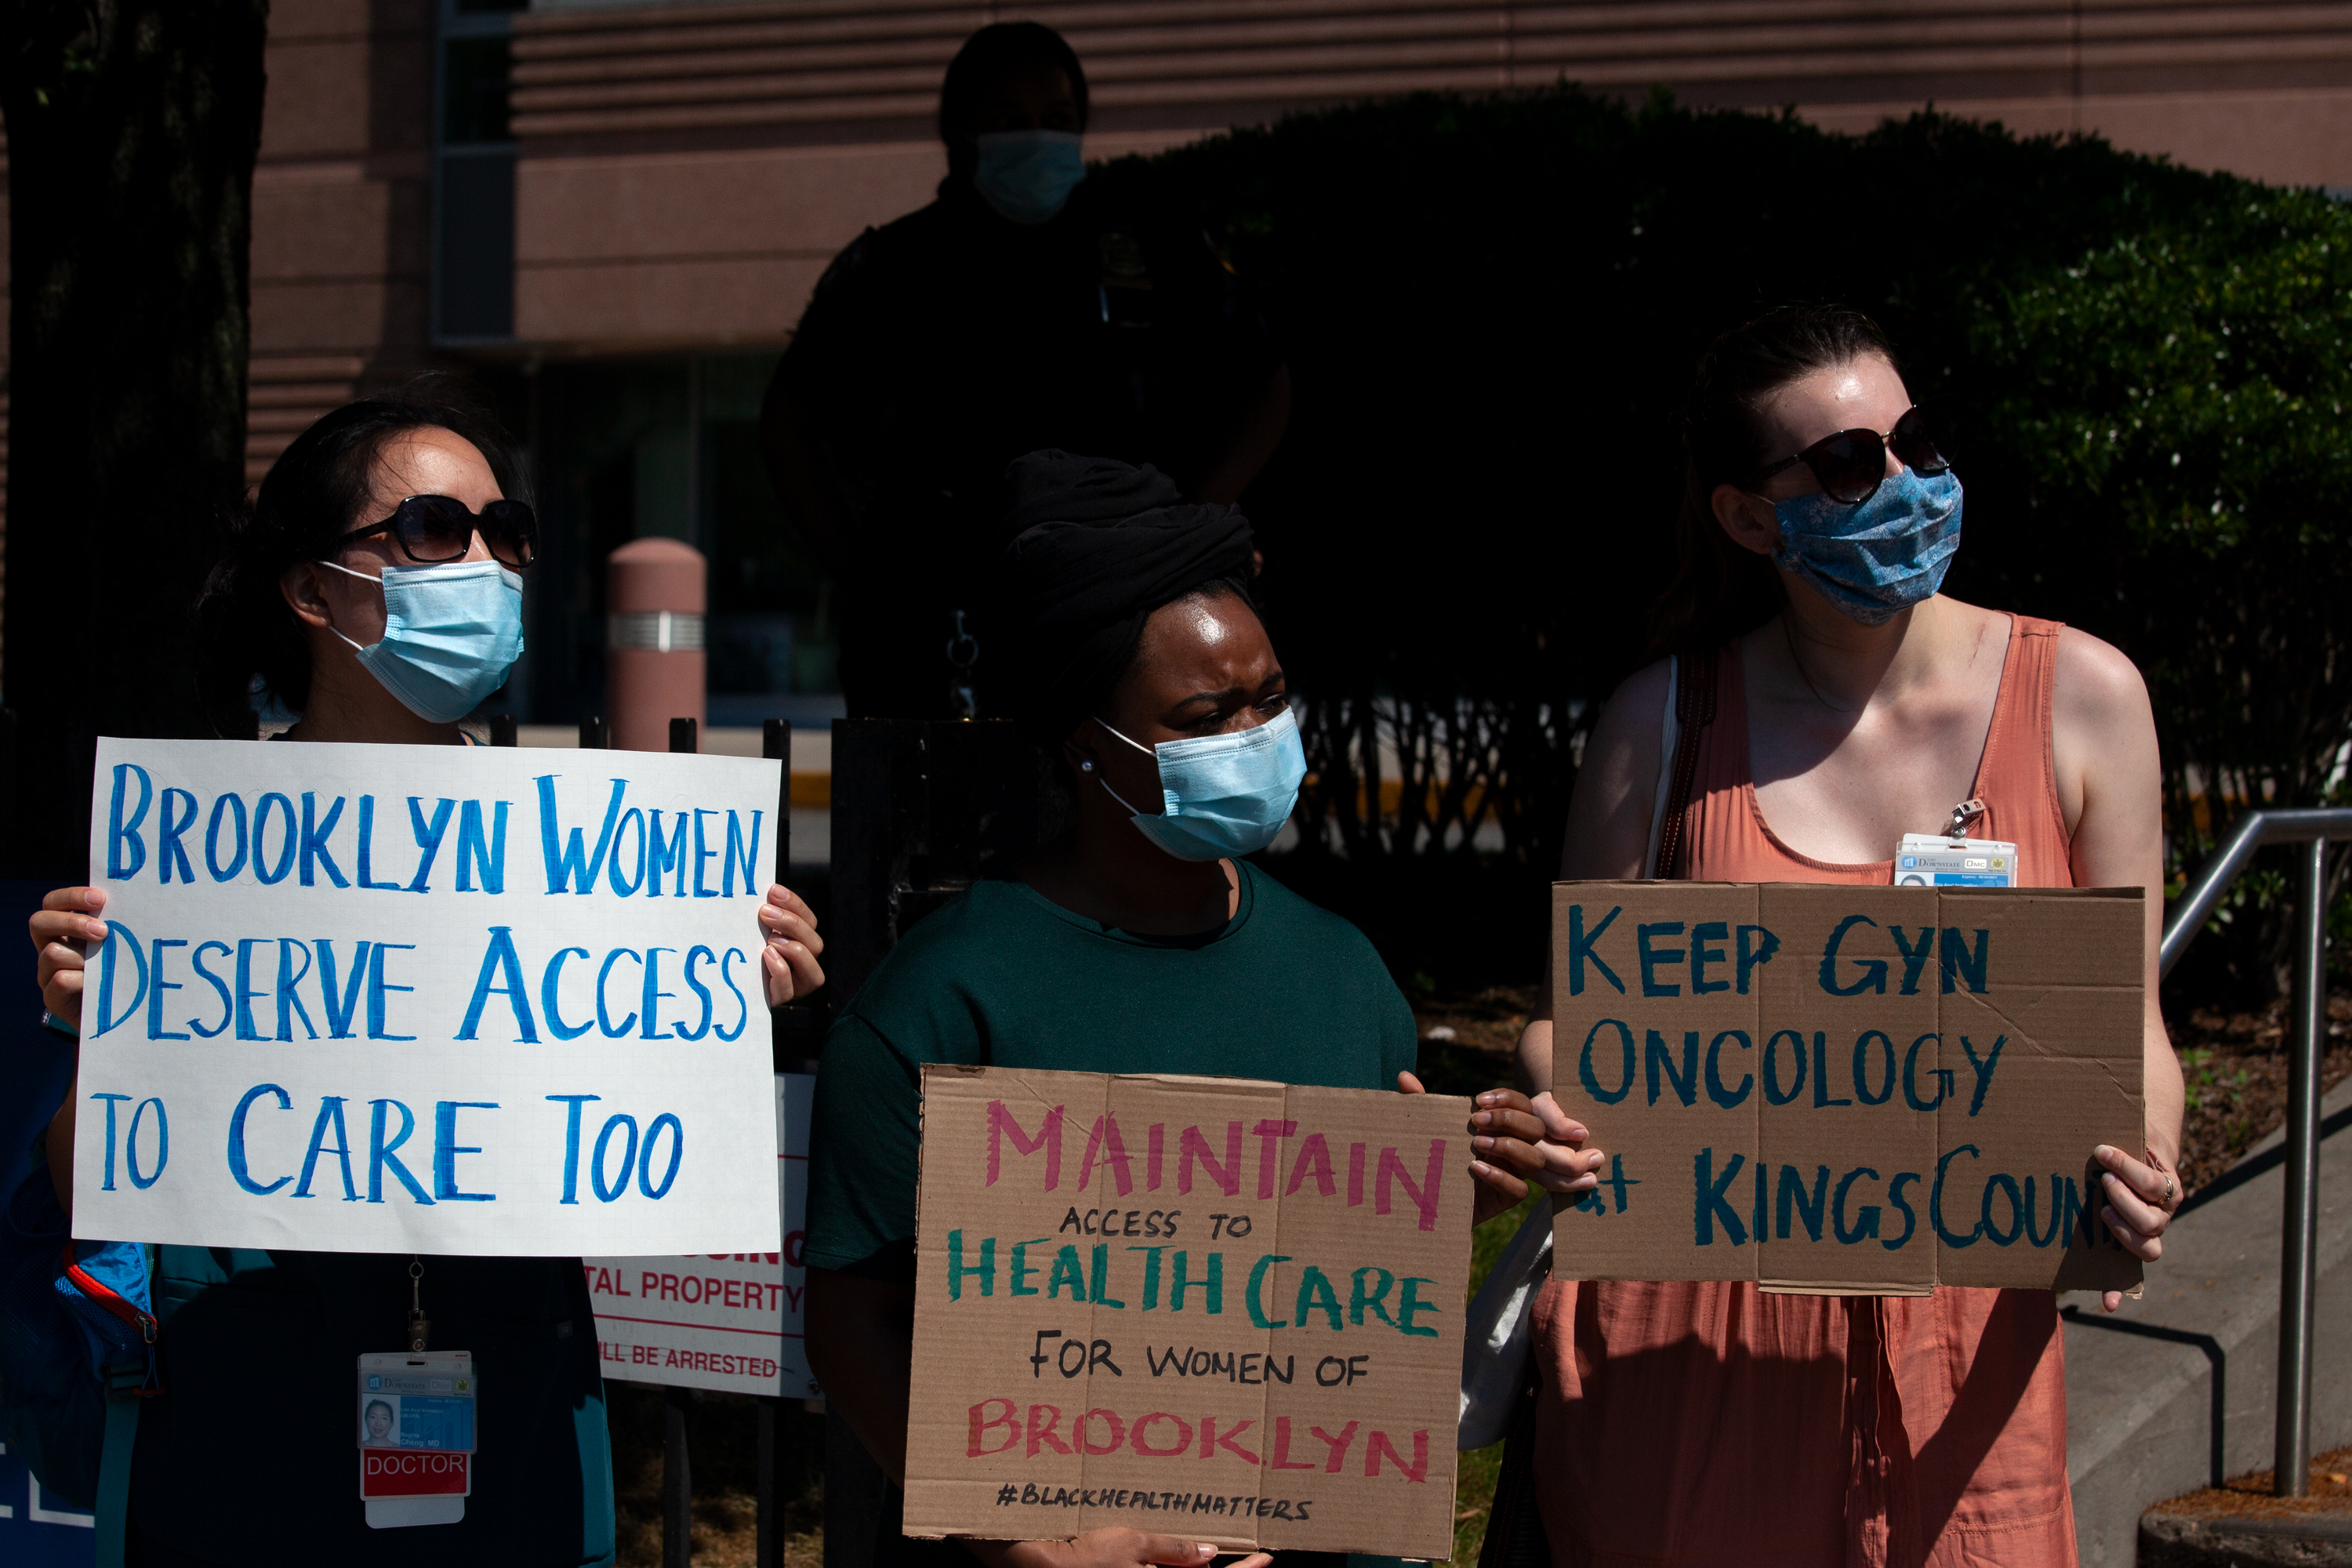 Kings County Hospital staff protested proposed cuts to gynecologic oncology services, June 29, 2020.